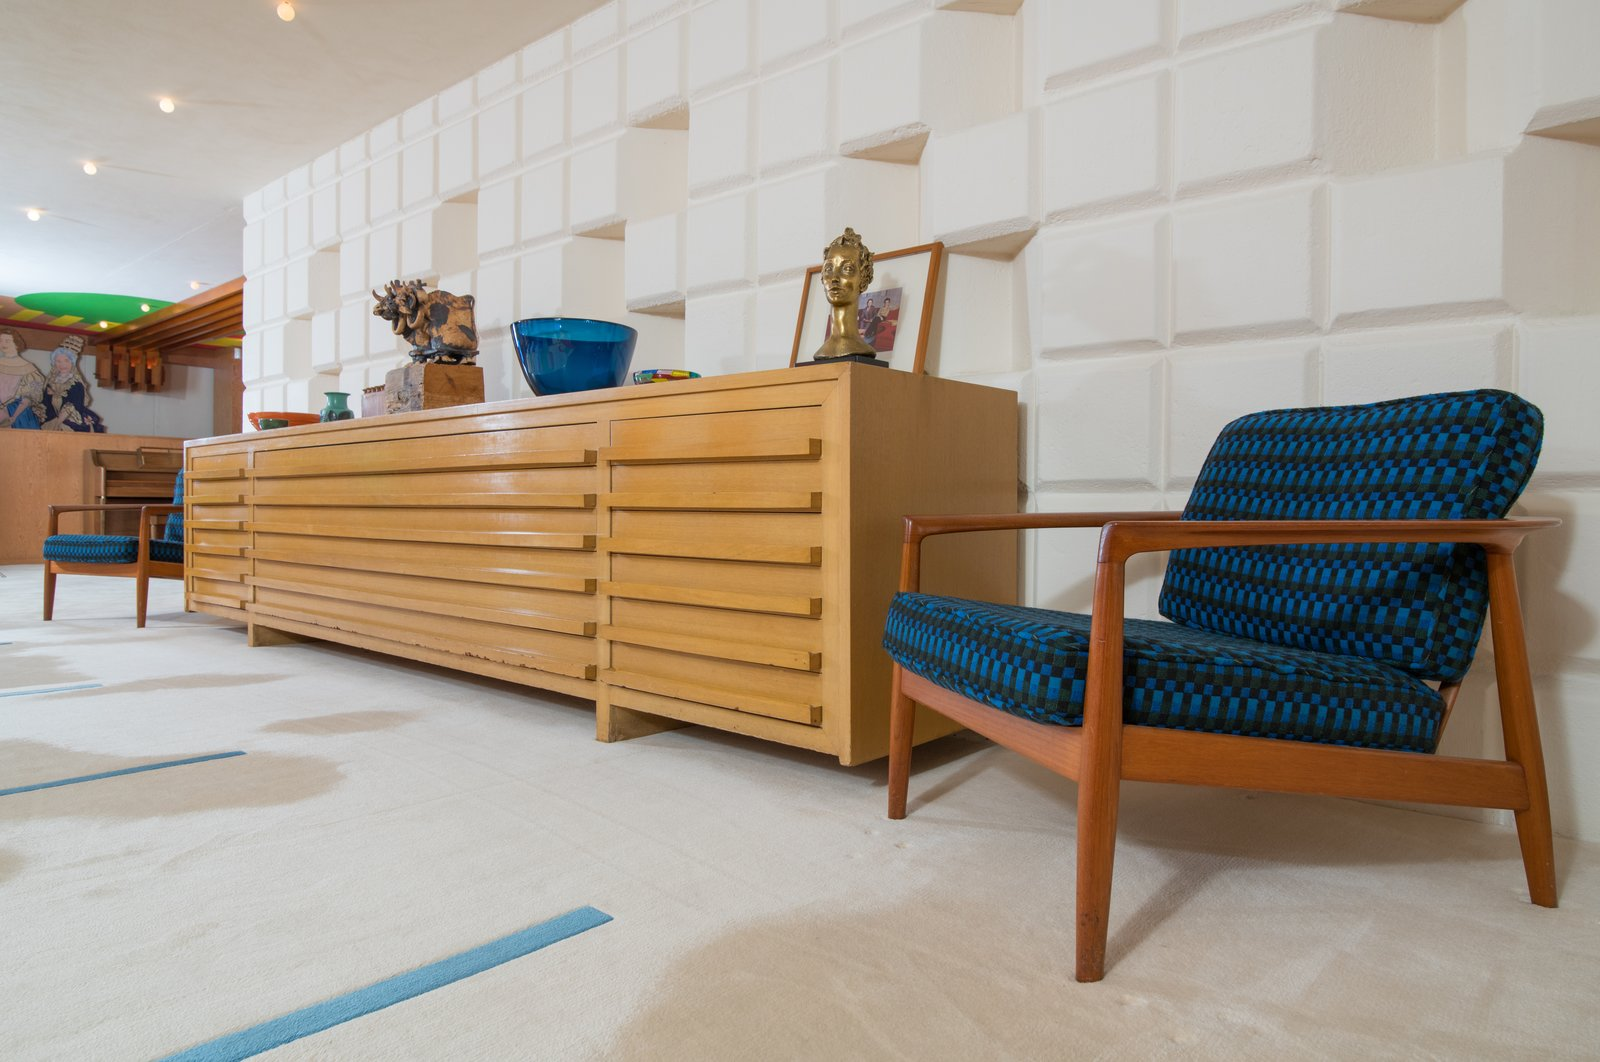 TK lounge chairs by TK flank the Herman Miller buffet table that Dow designed himself.